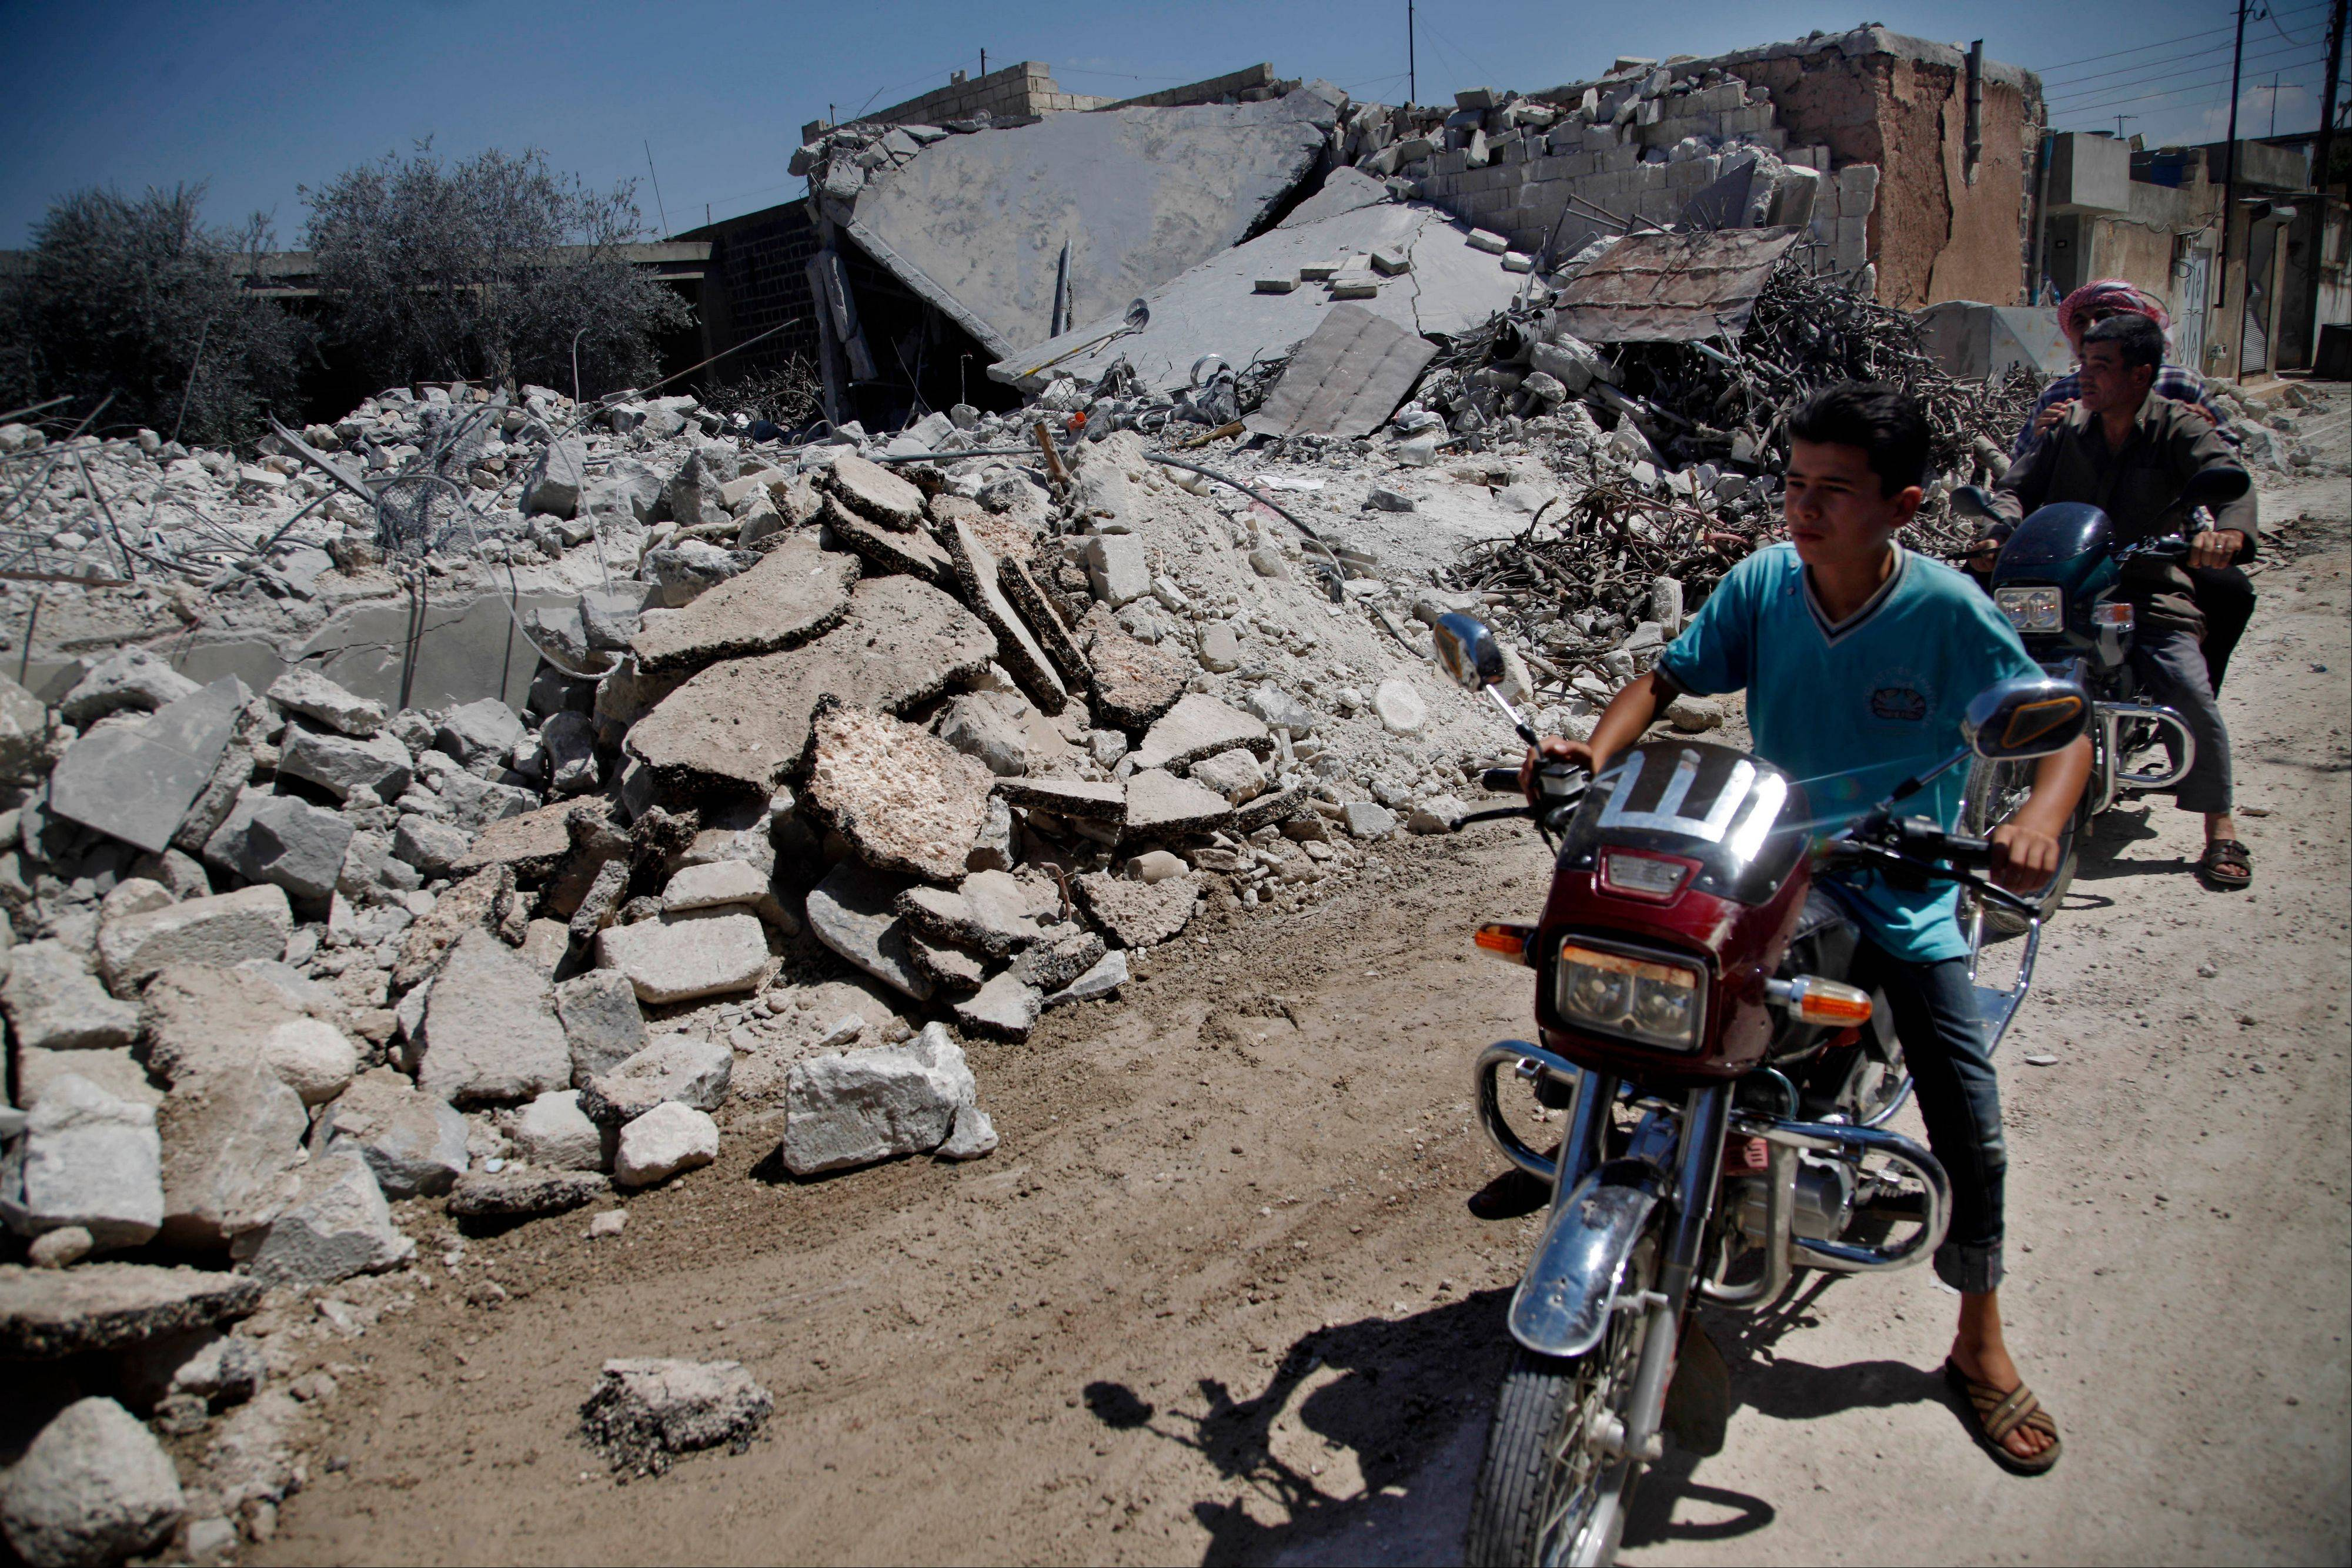 Associated Press Syrians on motorcycles look at the damage of a destroyed house after it was hit by an airstrike killing six Syrians in town of Tal Rifat on the outskirts of Aleppo city, Syria, Wednesday, Aug. 8, 2012.